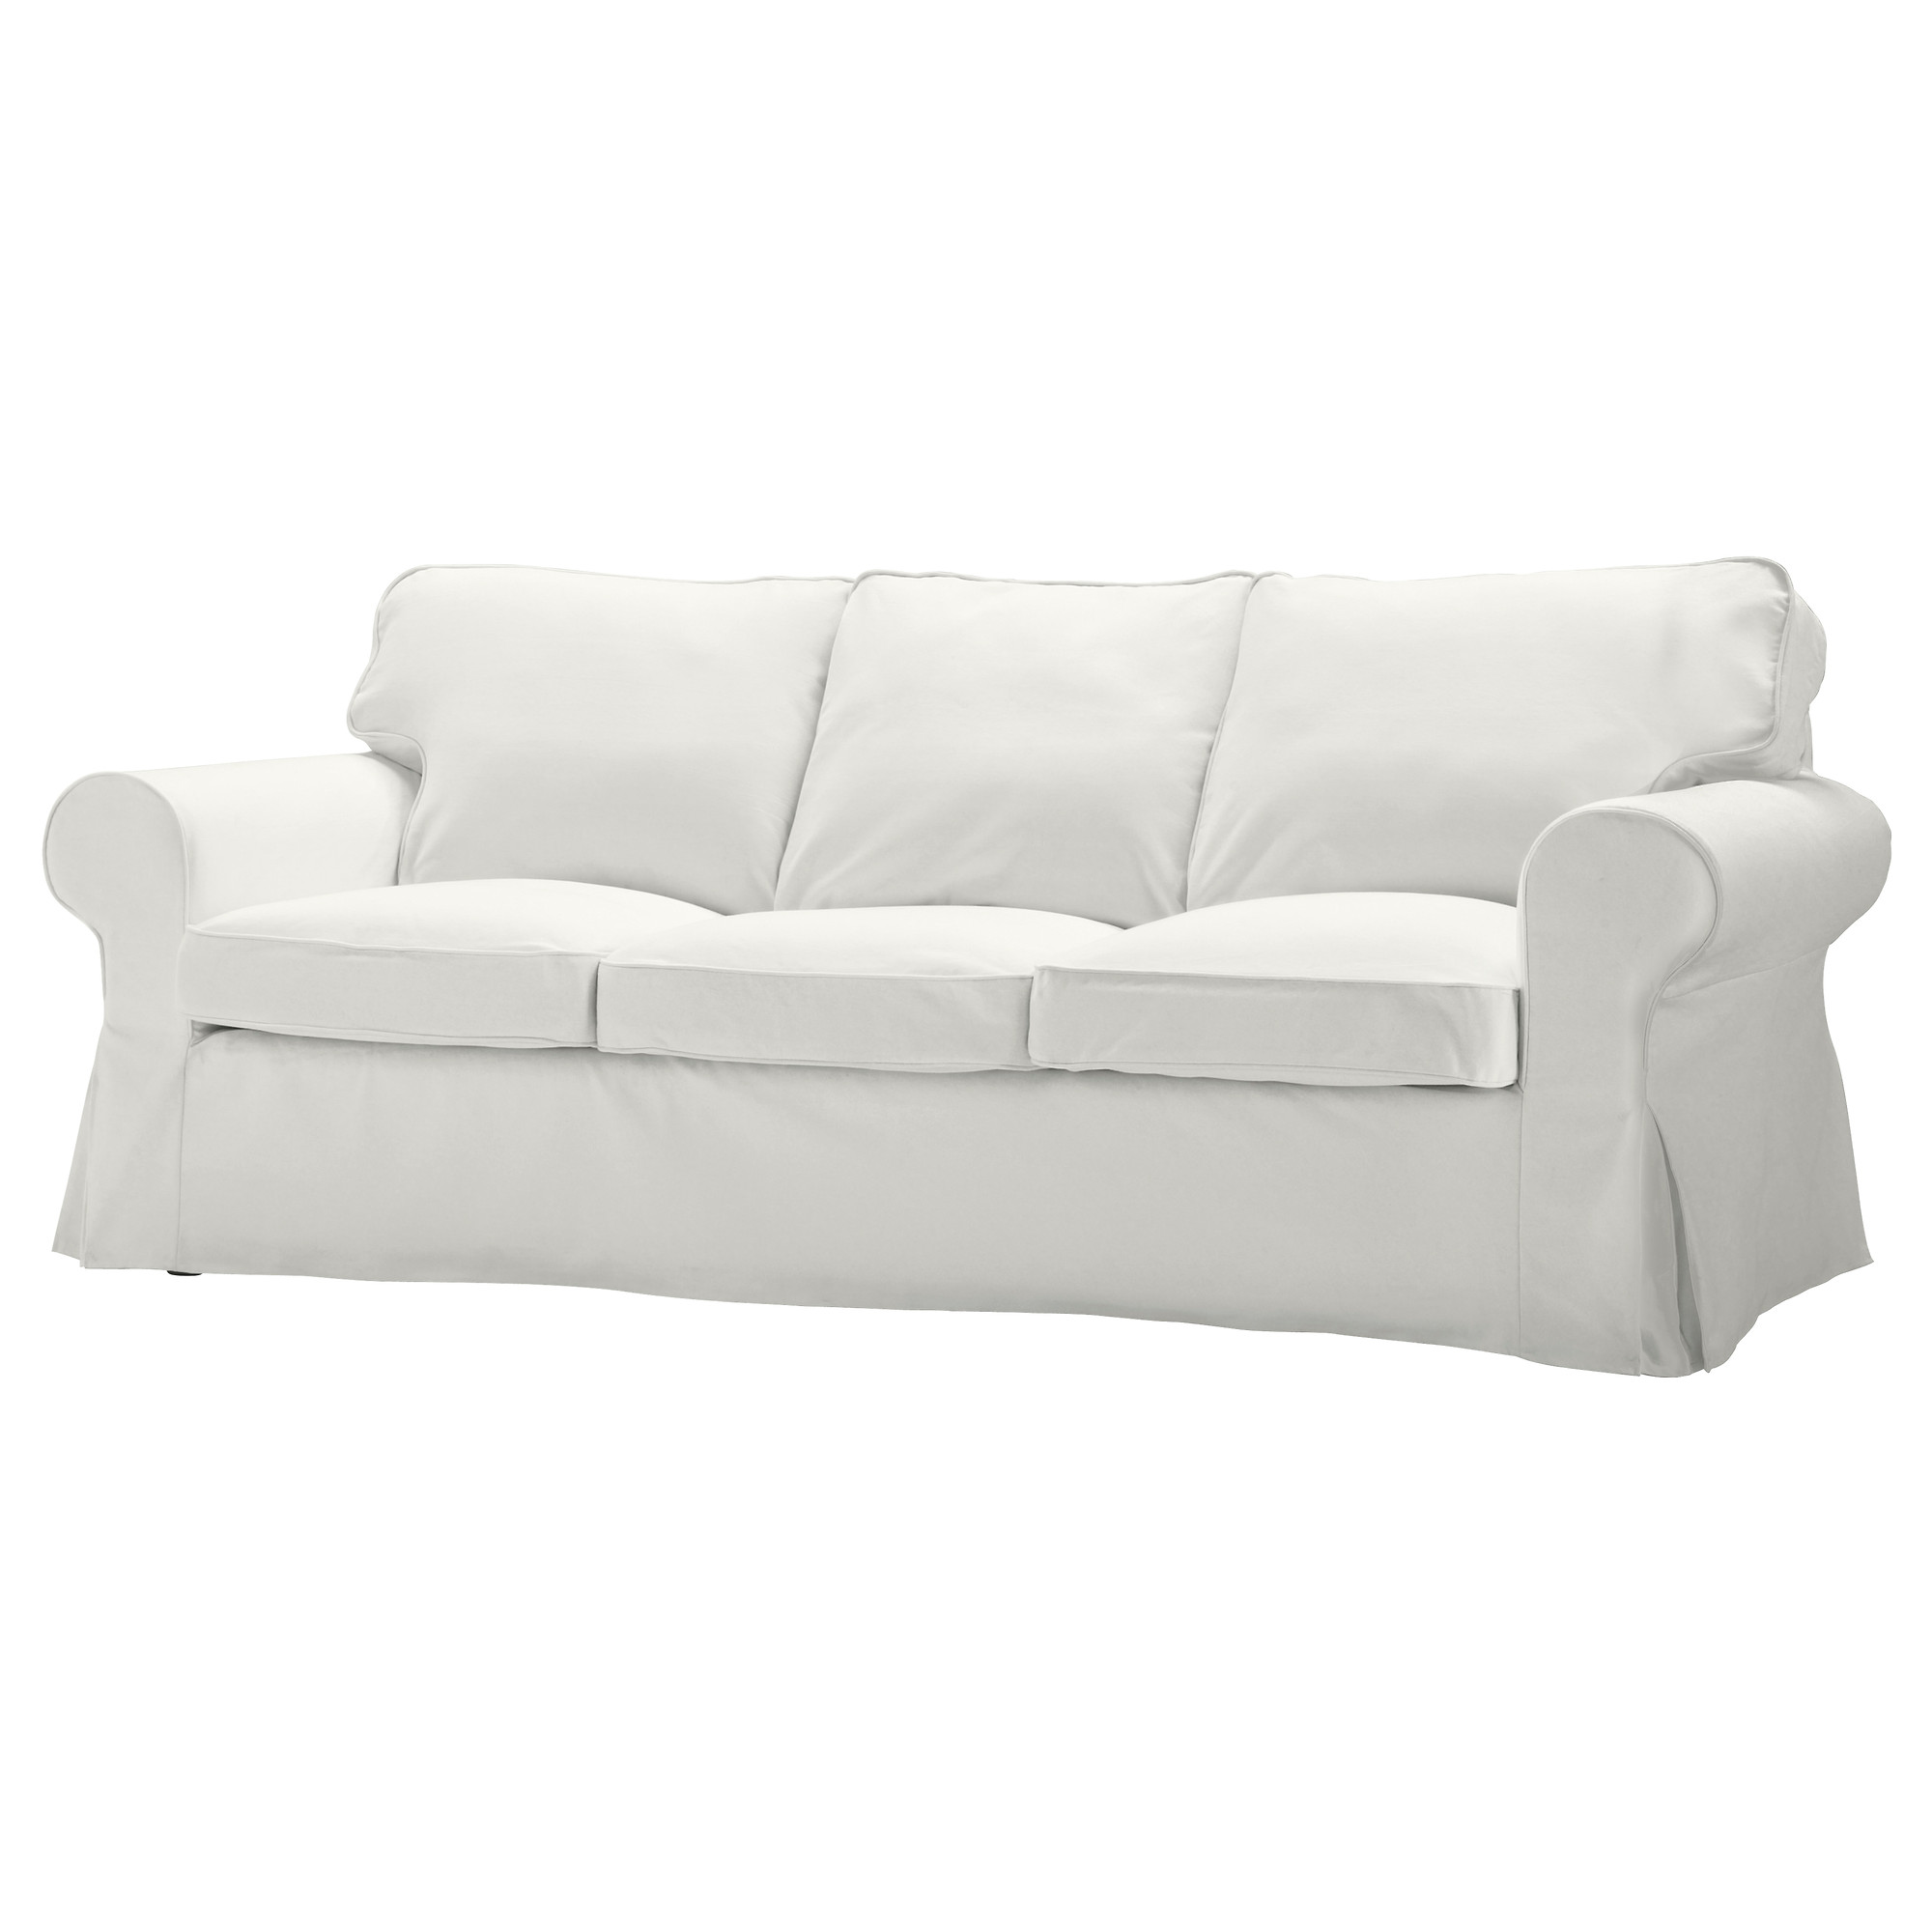 EKTORP Three Seat Sofa   Blekinge White   IKEA